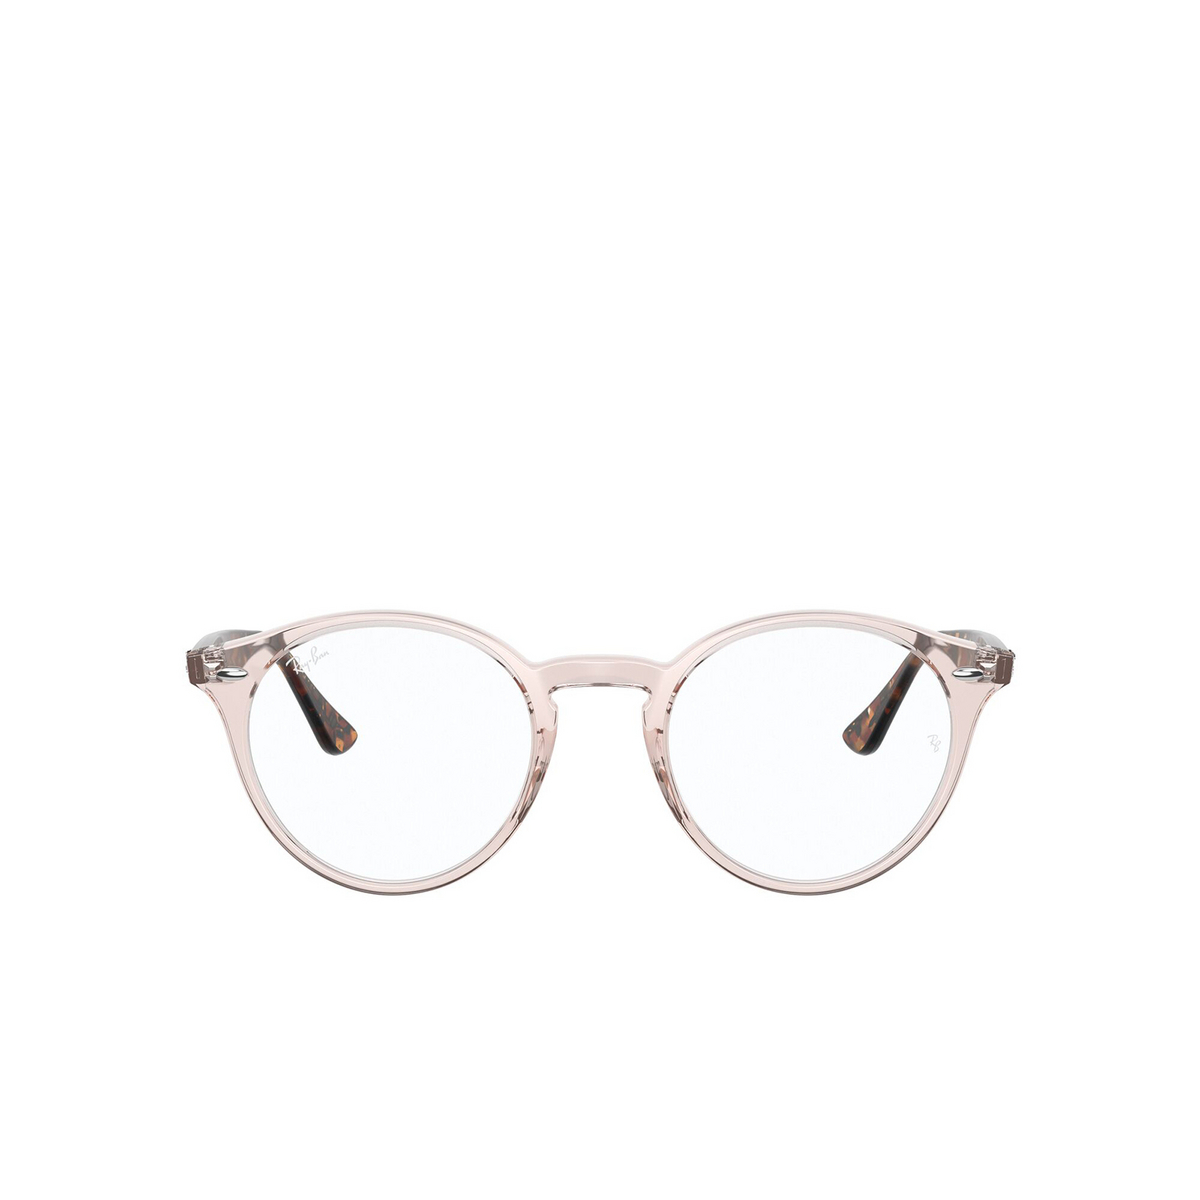 Ray-Ban® Round Eyeglasses: RX2180V color Transparent Light Brown 8080 - front view.